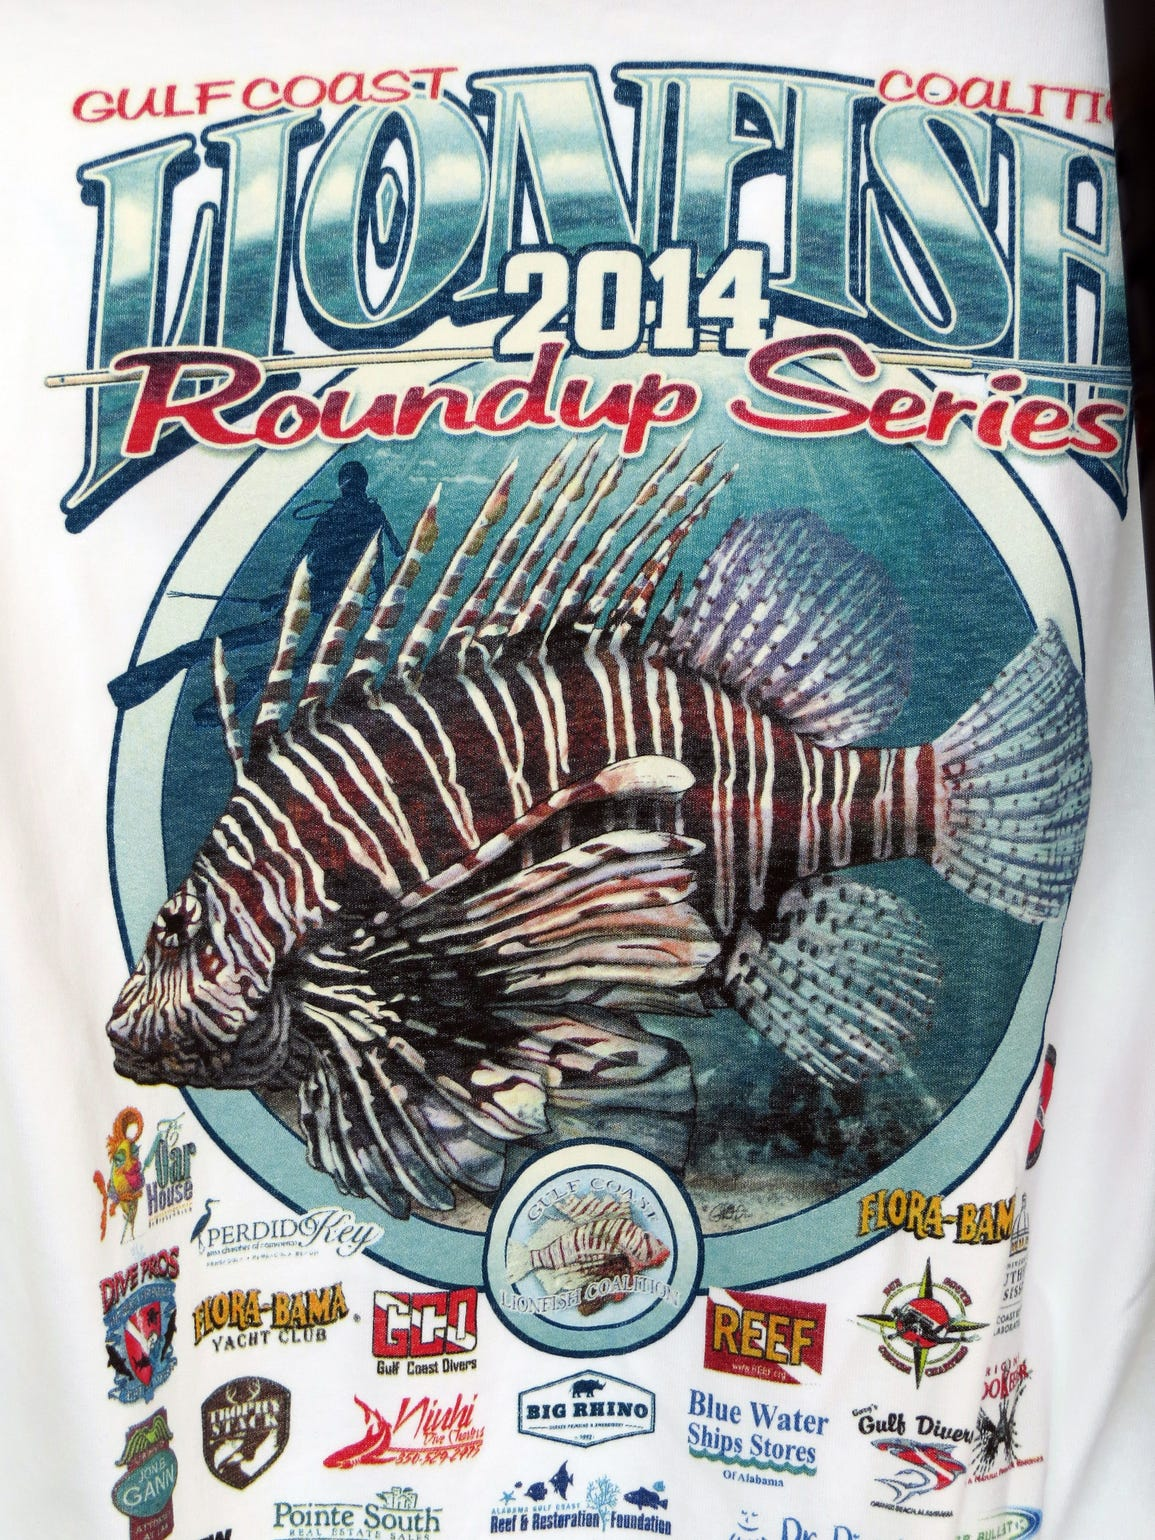 T-shirt advertising the Gulf Coast Lionfish Coalition